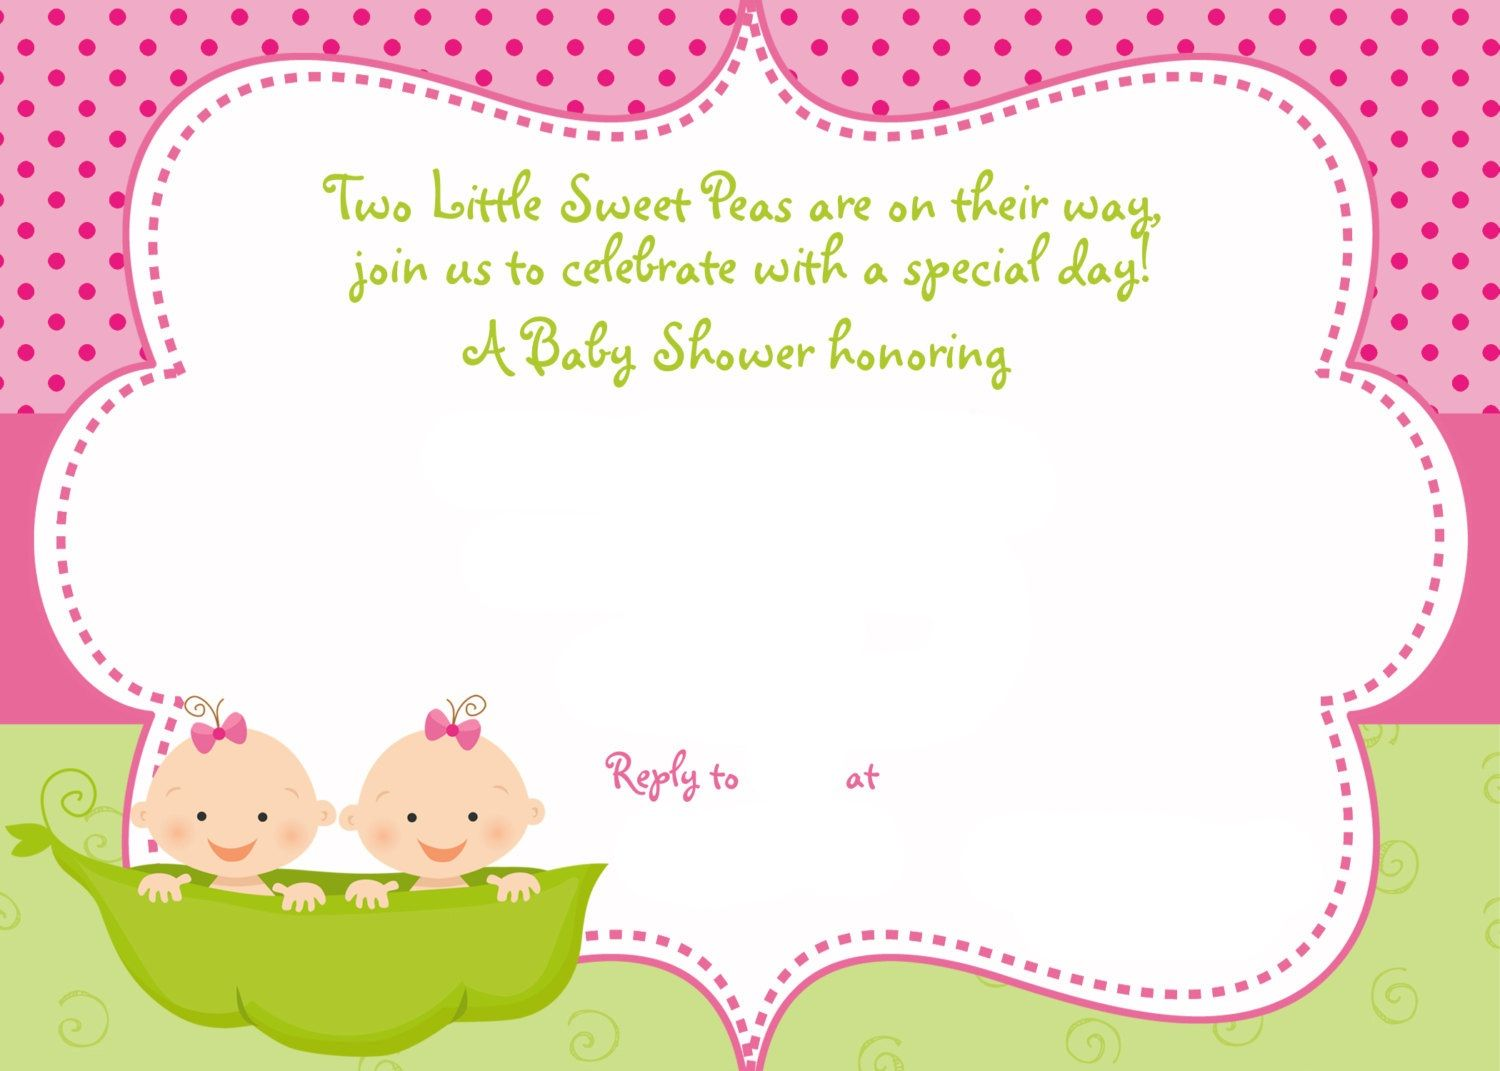 photo relating to Free Printable Twin Baby Shower Invitations named Interesting Totally free Printable Twins Little one Shower Invitation Strategies